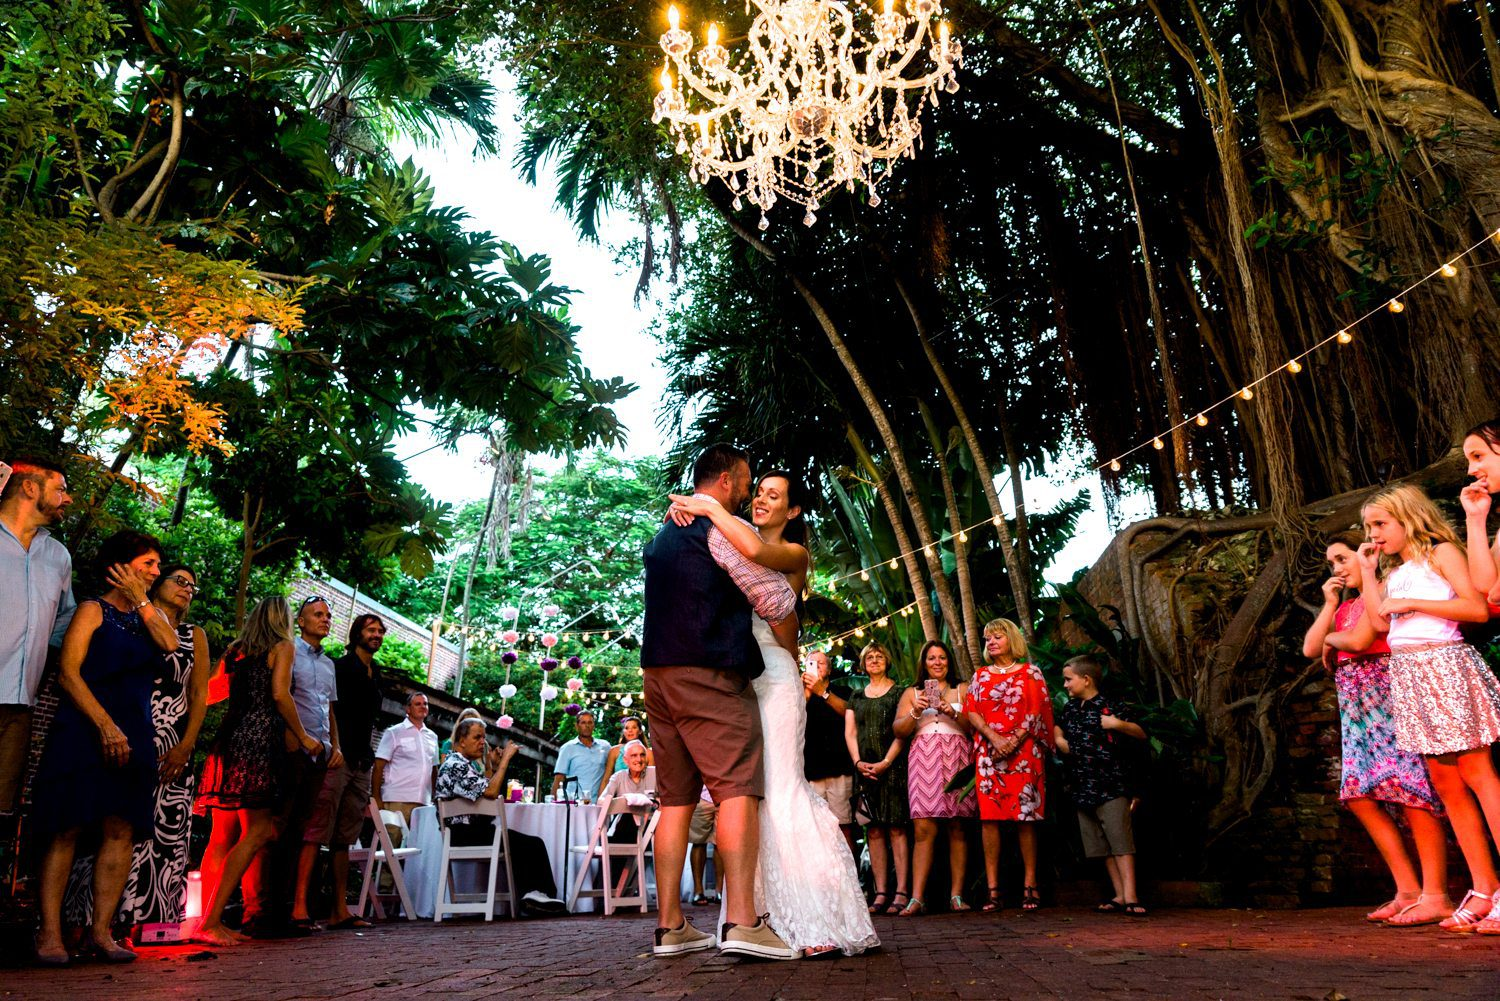 Tracey Joe Key West Garden Club 33 - Tracey & Joe | Key West Wedding Photographer | Key West Garden Club